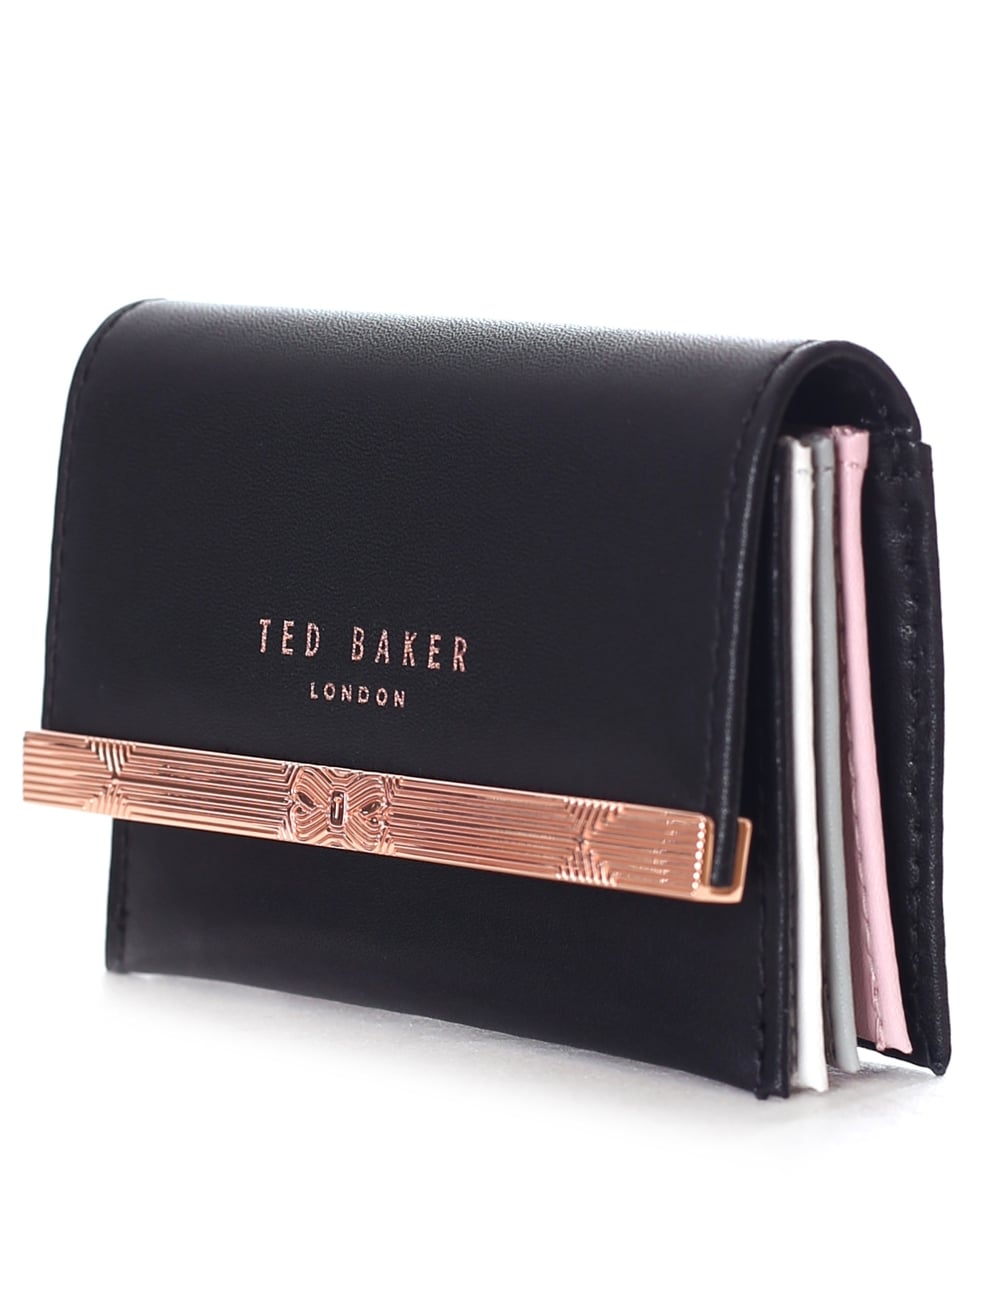 043ccc7a8b3d9 Ted Baker Niccole Concertina Credit Card Holder